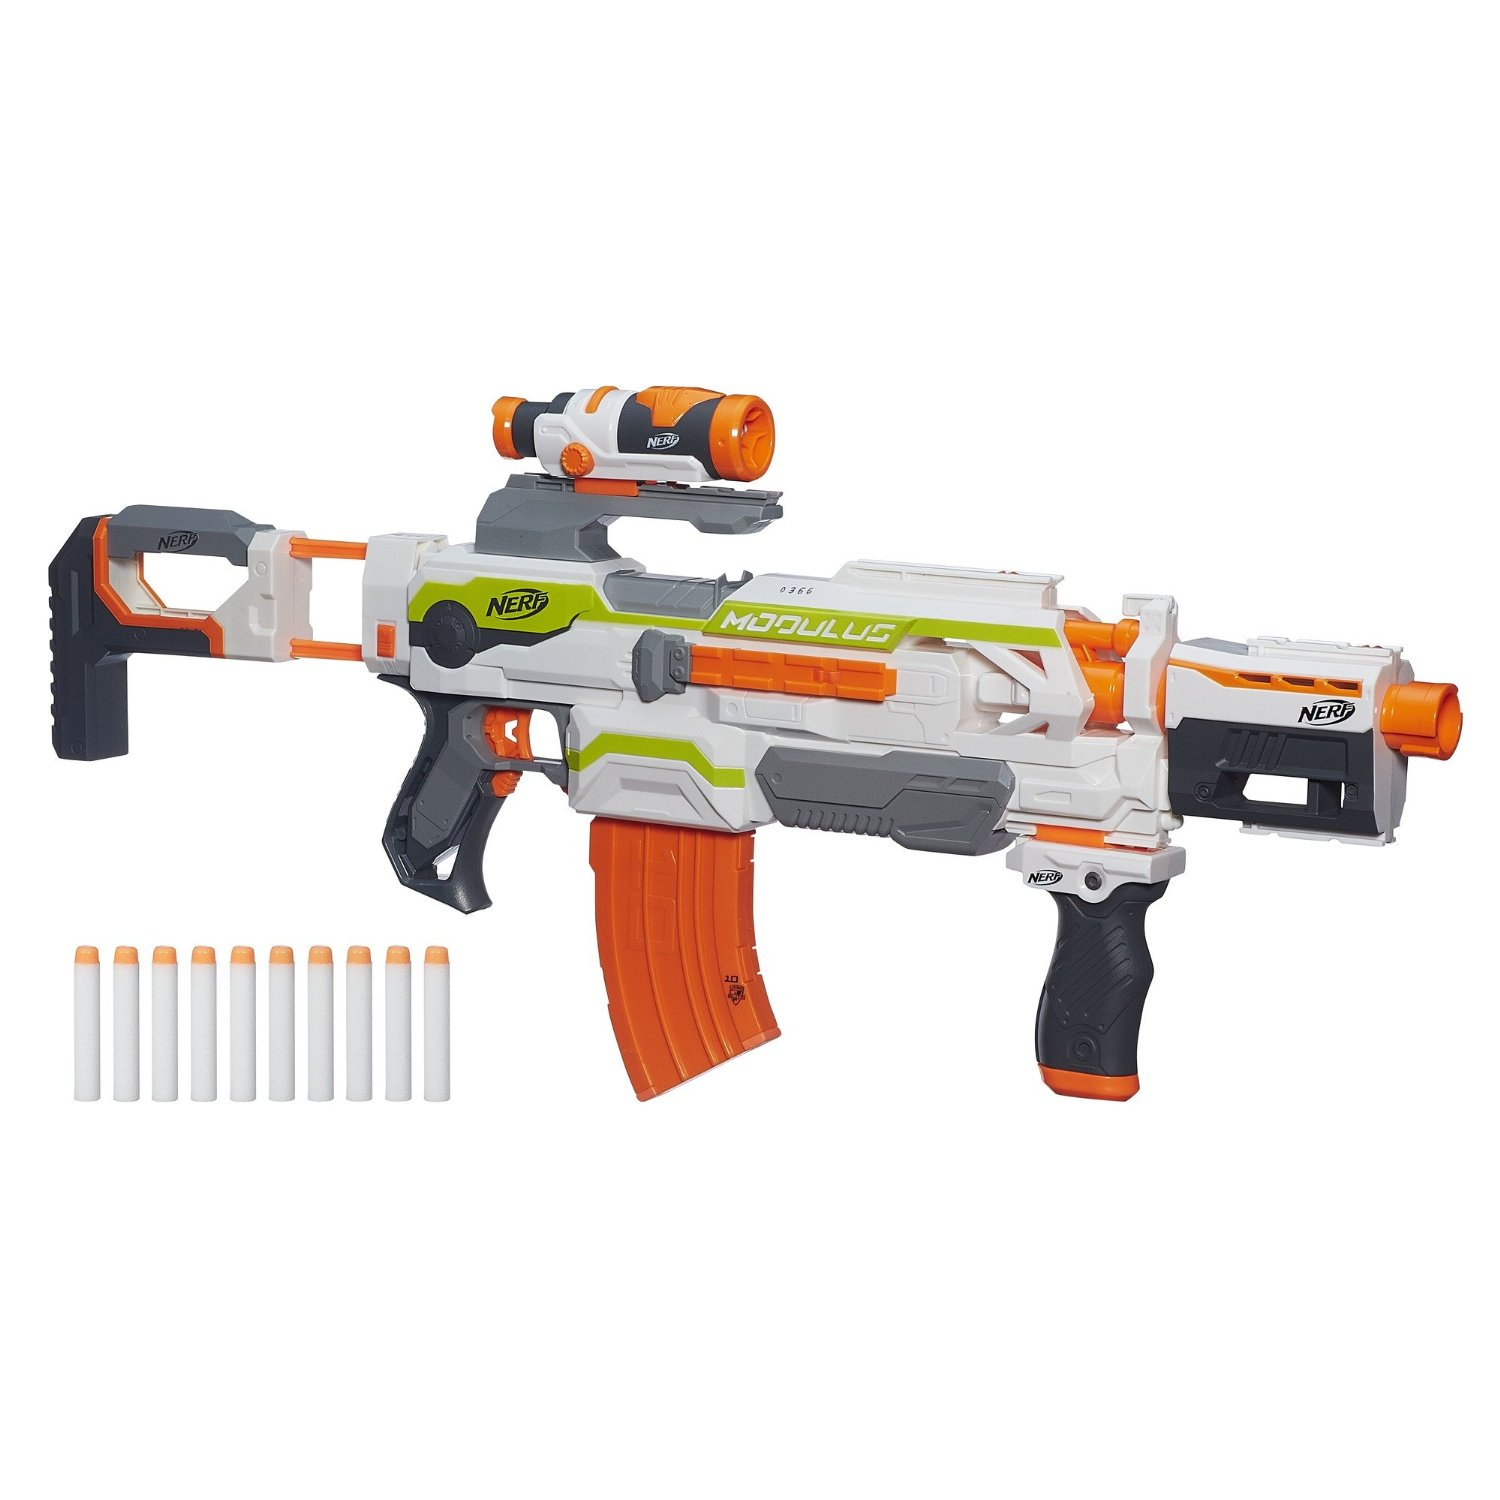 Nerf N Strike Modulus ECS 10 Blaster Review Kids Toys News